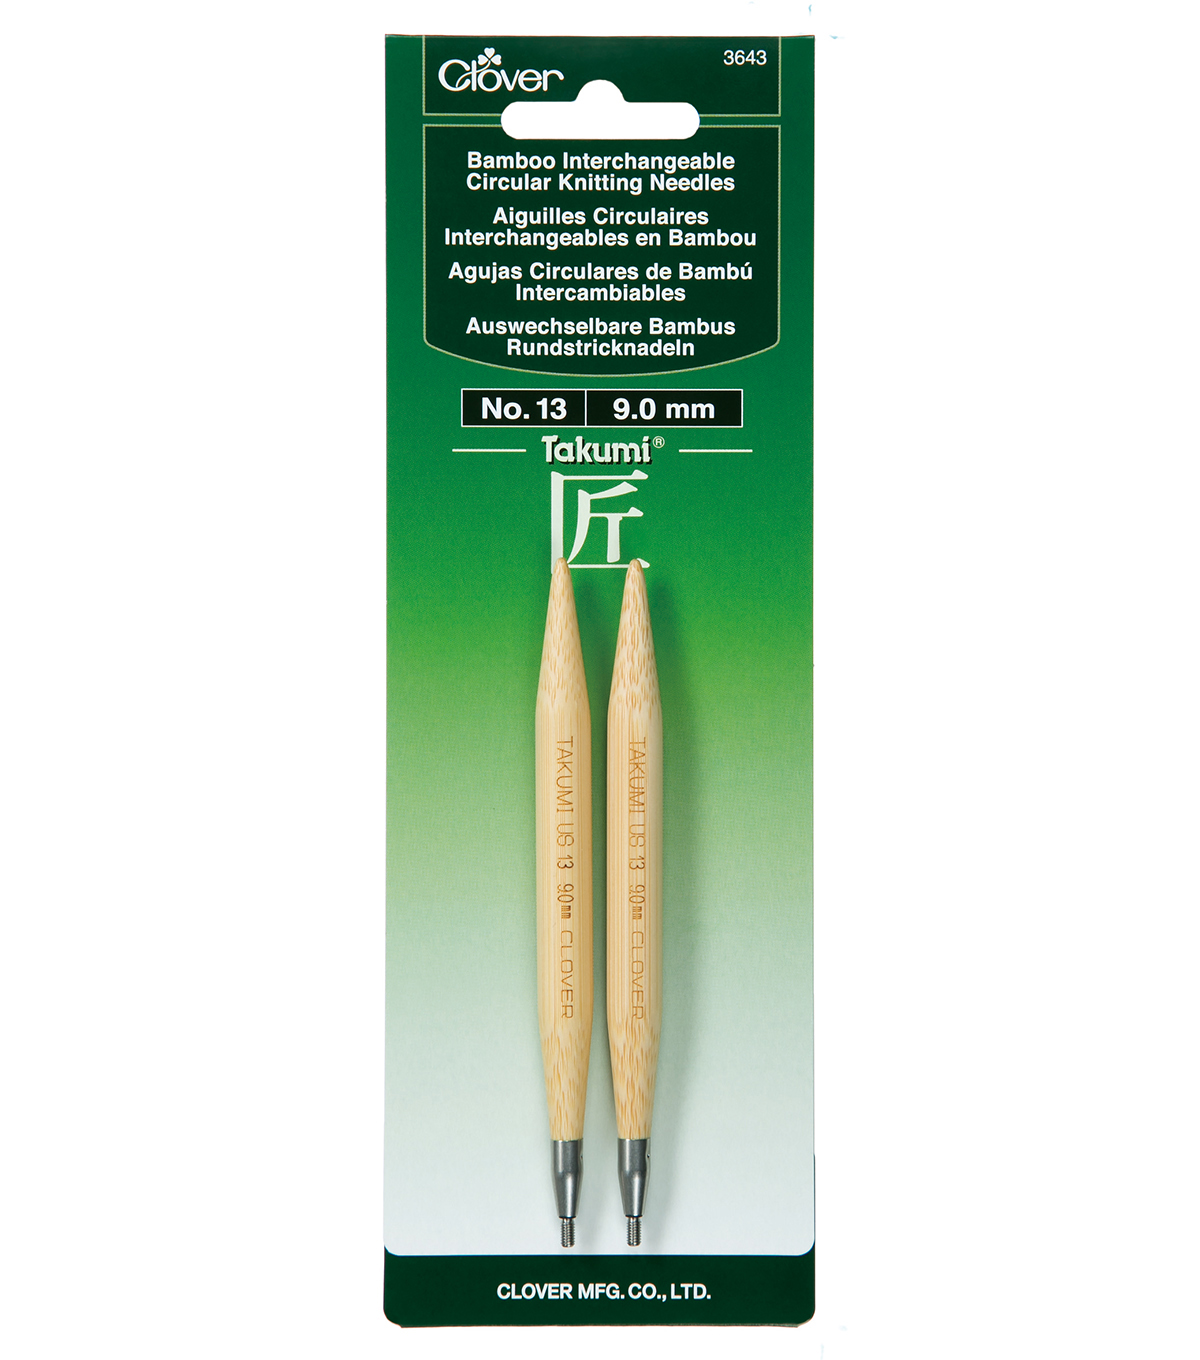 Clover Takumi Interchangeable Circular Knitting Needles Size 13/9mm